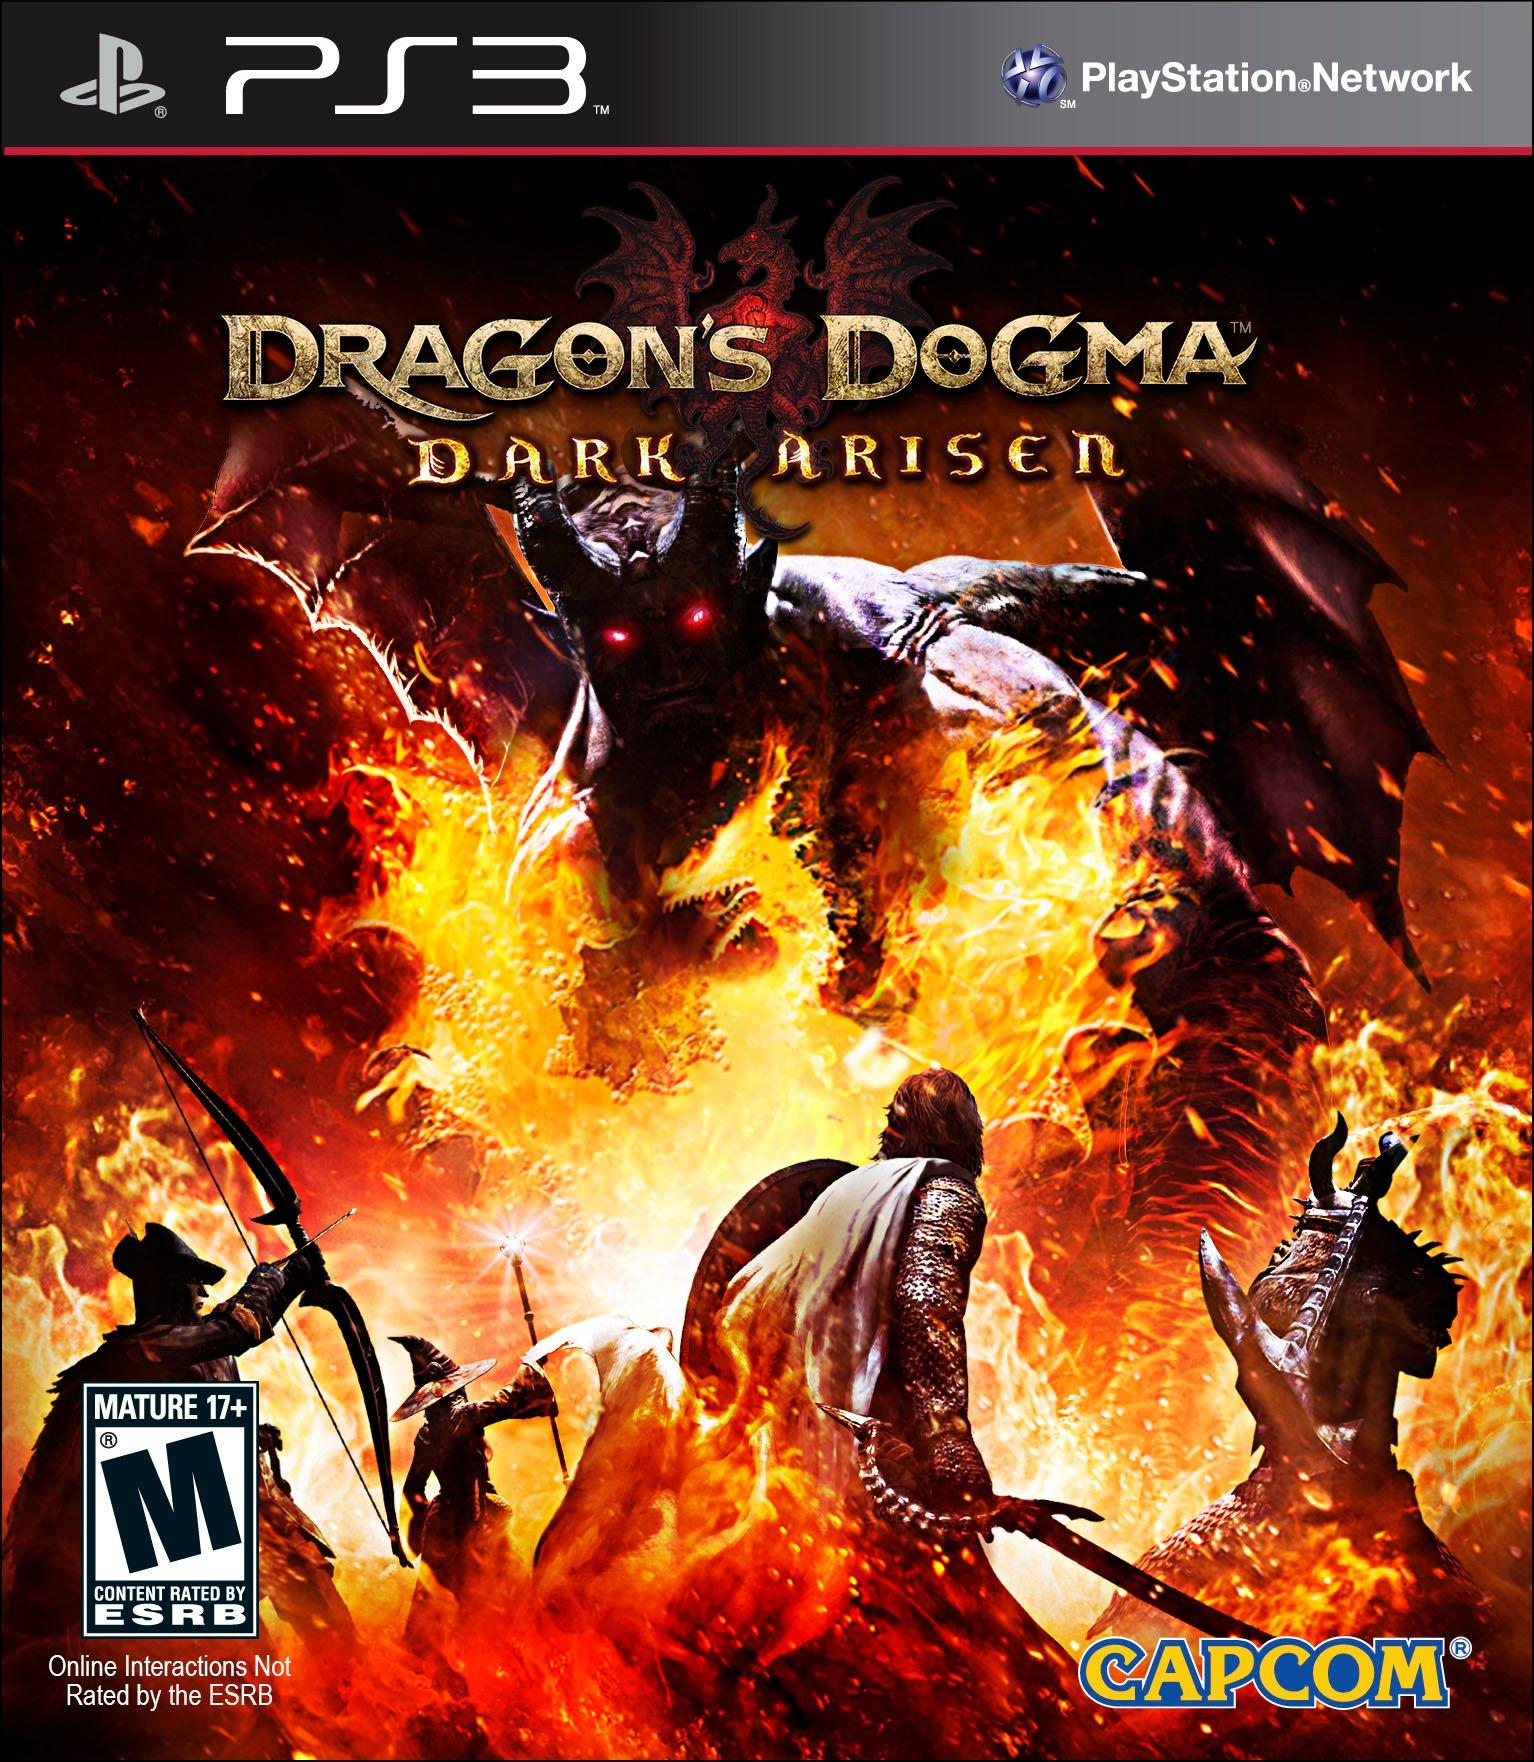 Dragon's Dogma: Dark Arisen | PlayStation 3 | GameStop